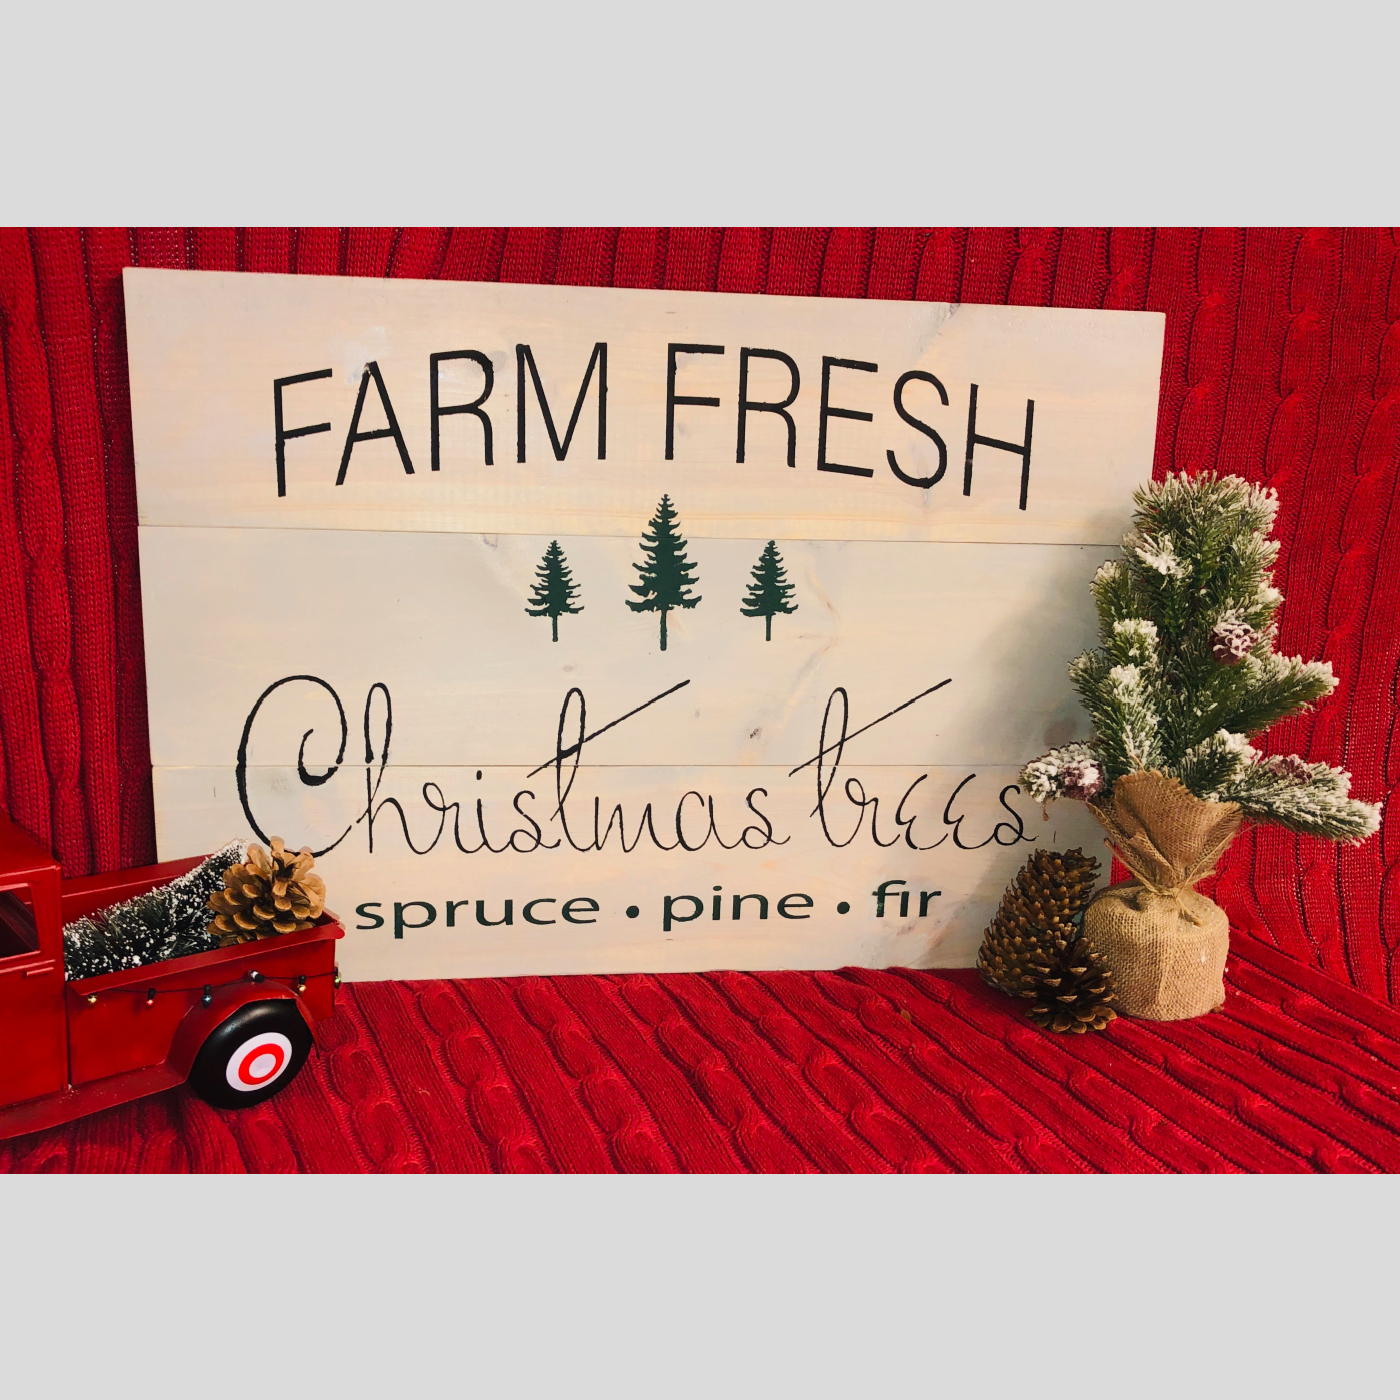 Farm Fresh Christmas Trees DIY Wood sign Christmas